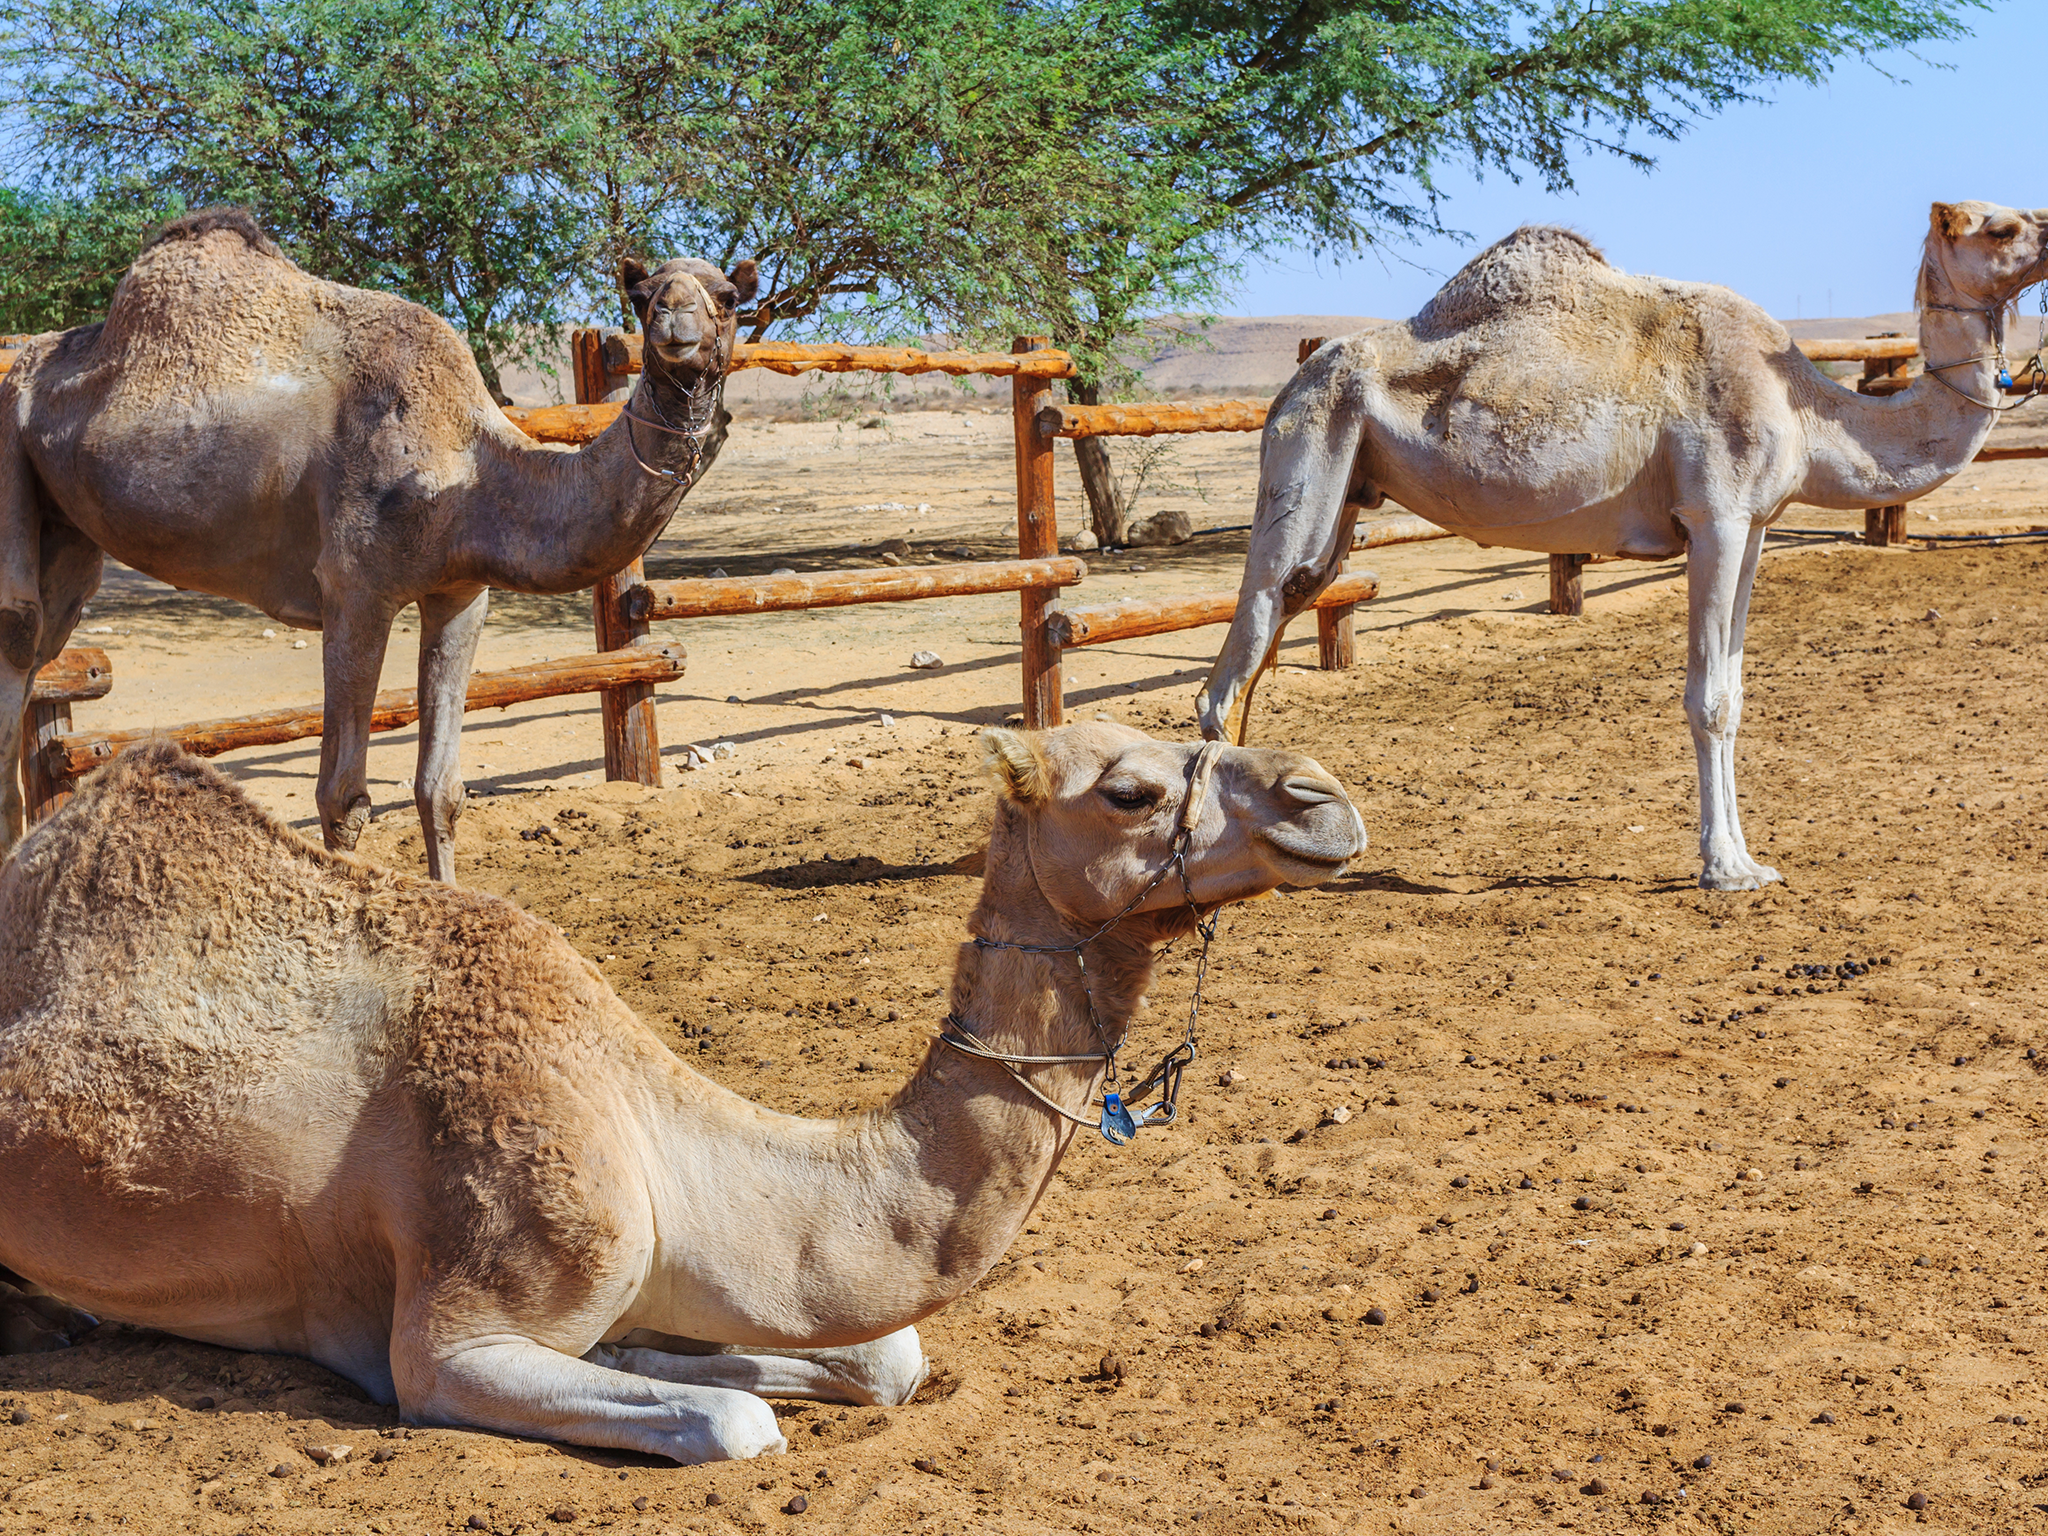 The Negev Camel Ranch - Bedouin Hospitality